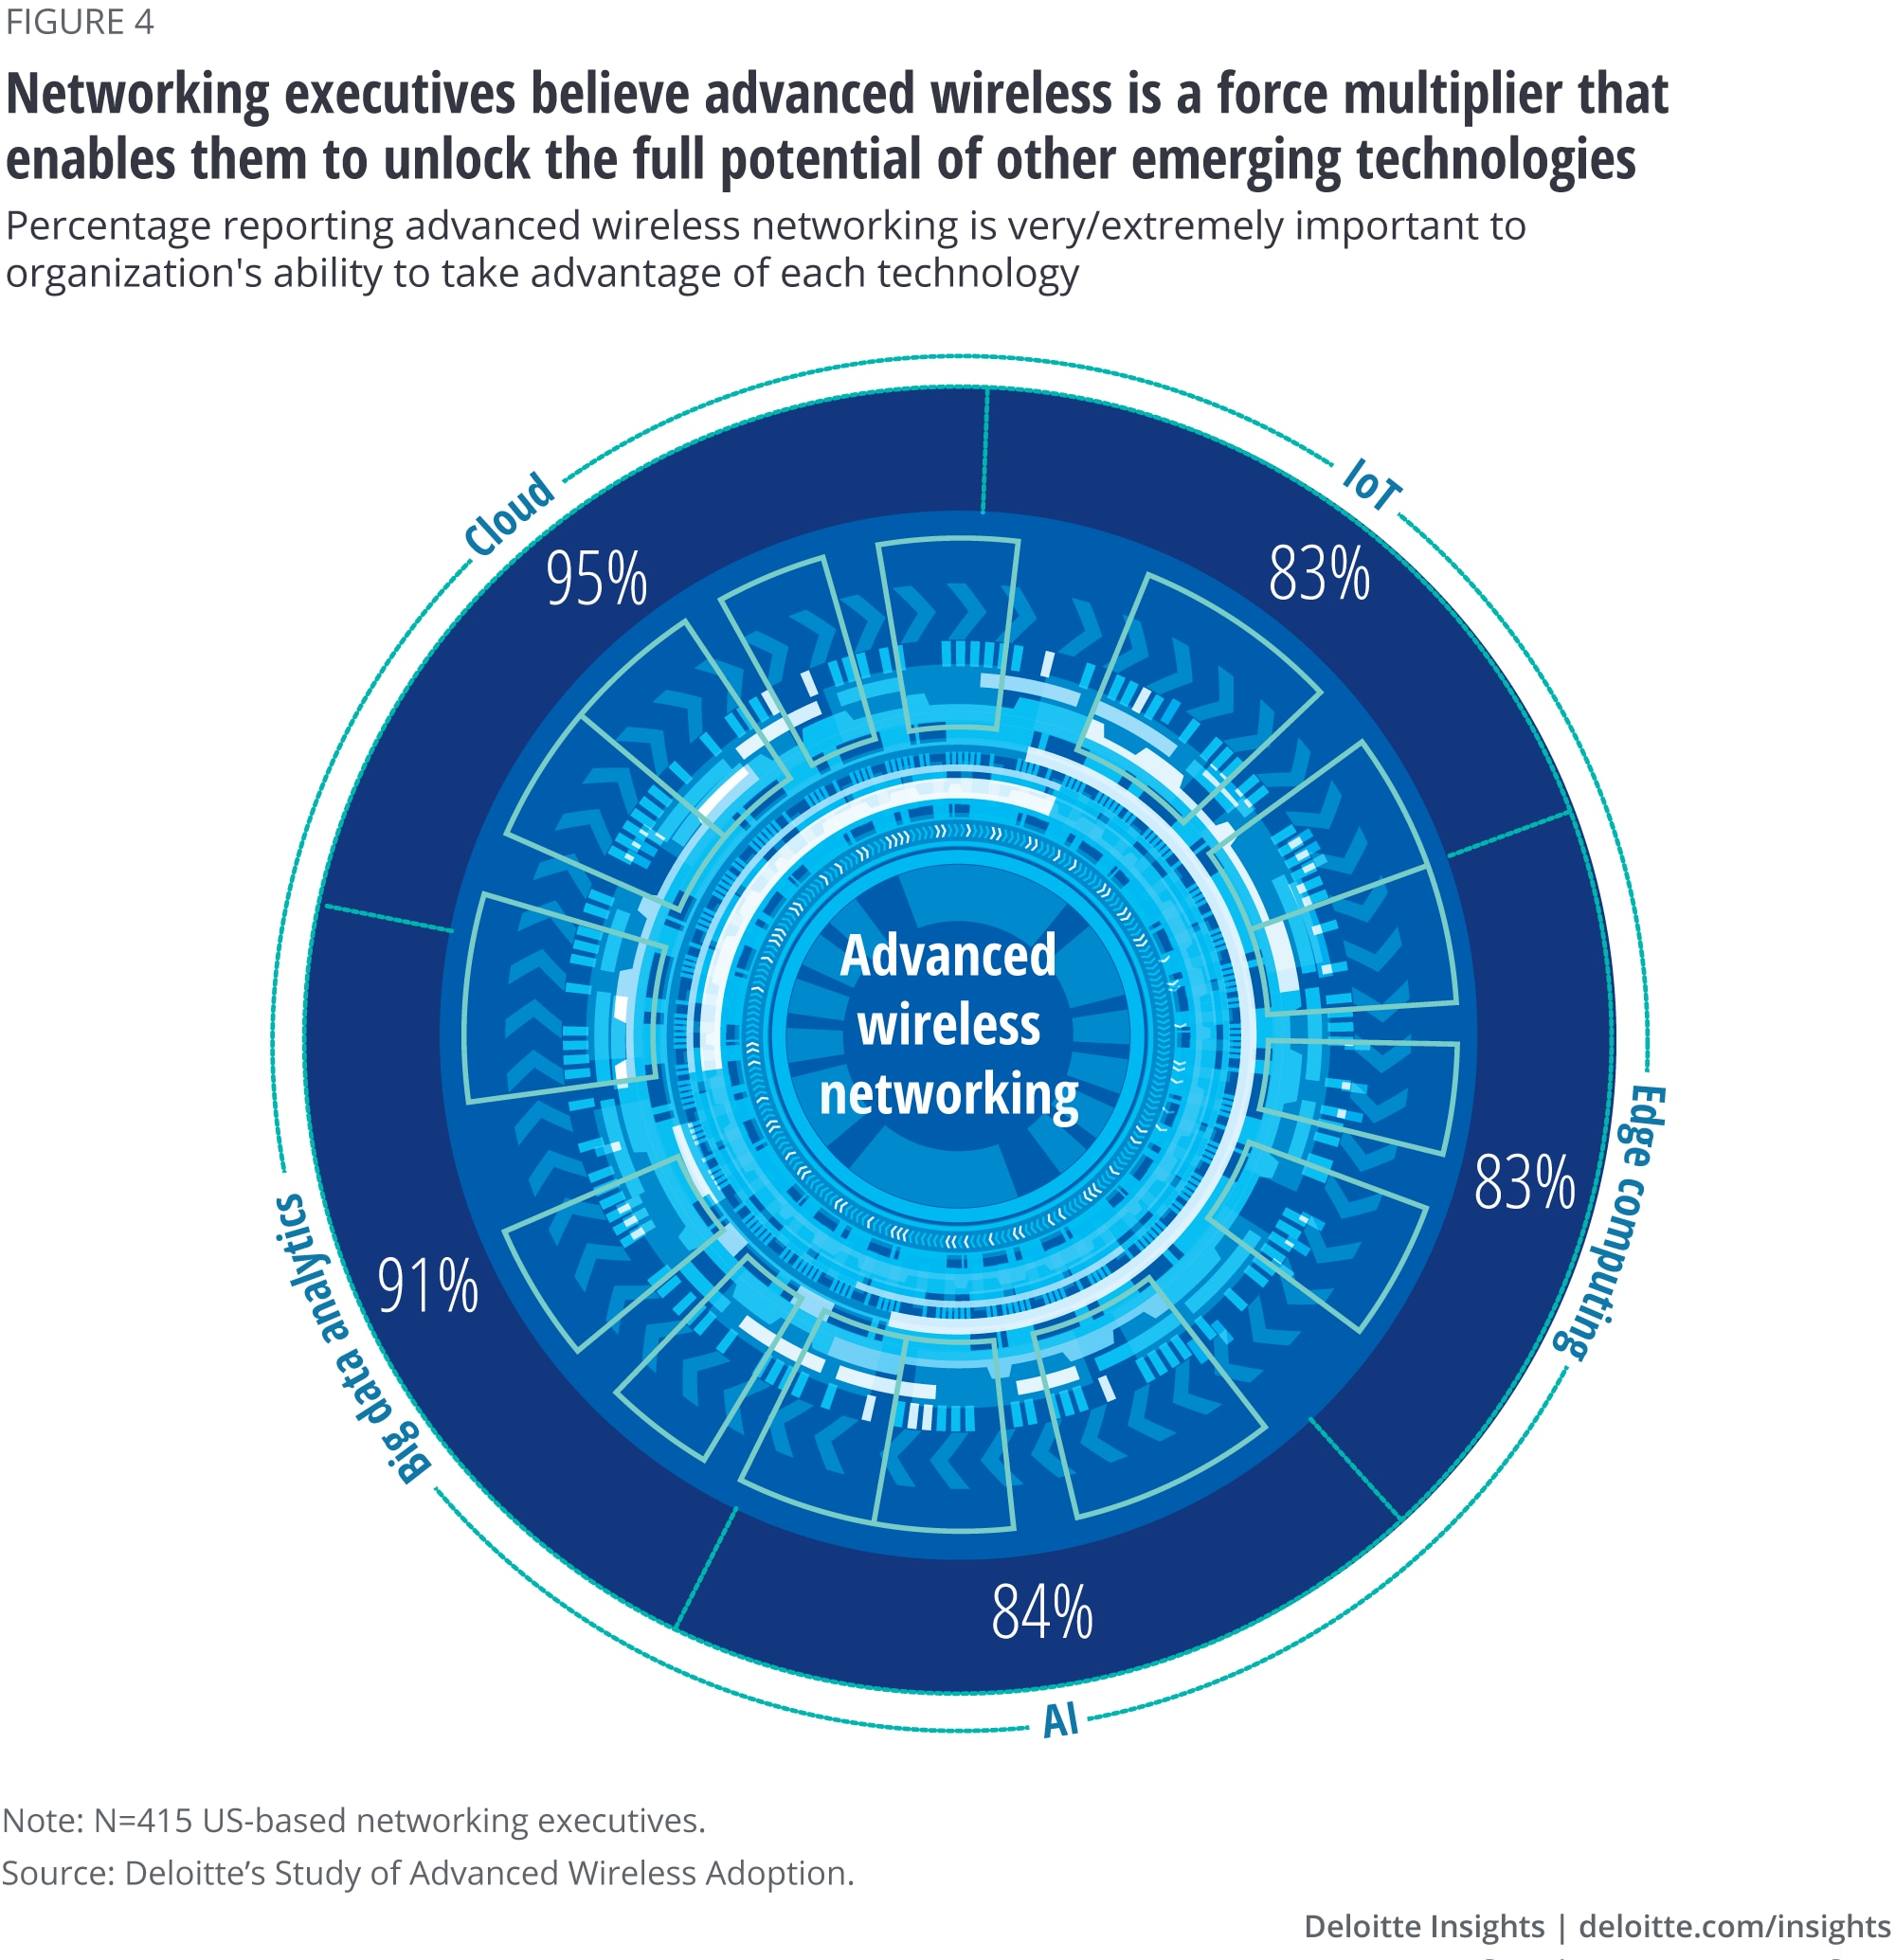 Networking executives believe advanced wireless is a force multiplier that enables them to unlock the full potential of other emerging technologies